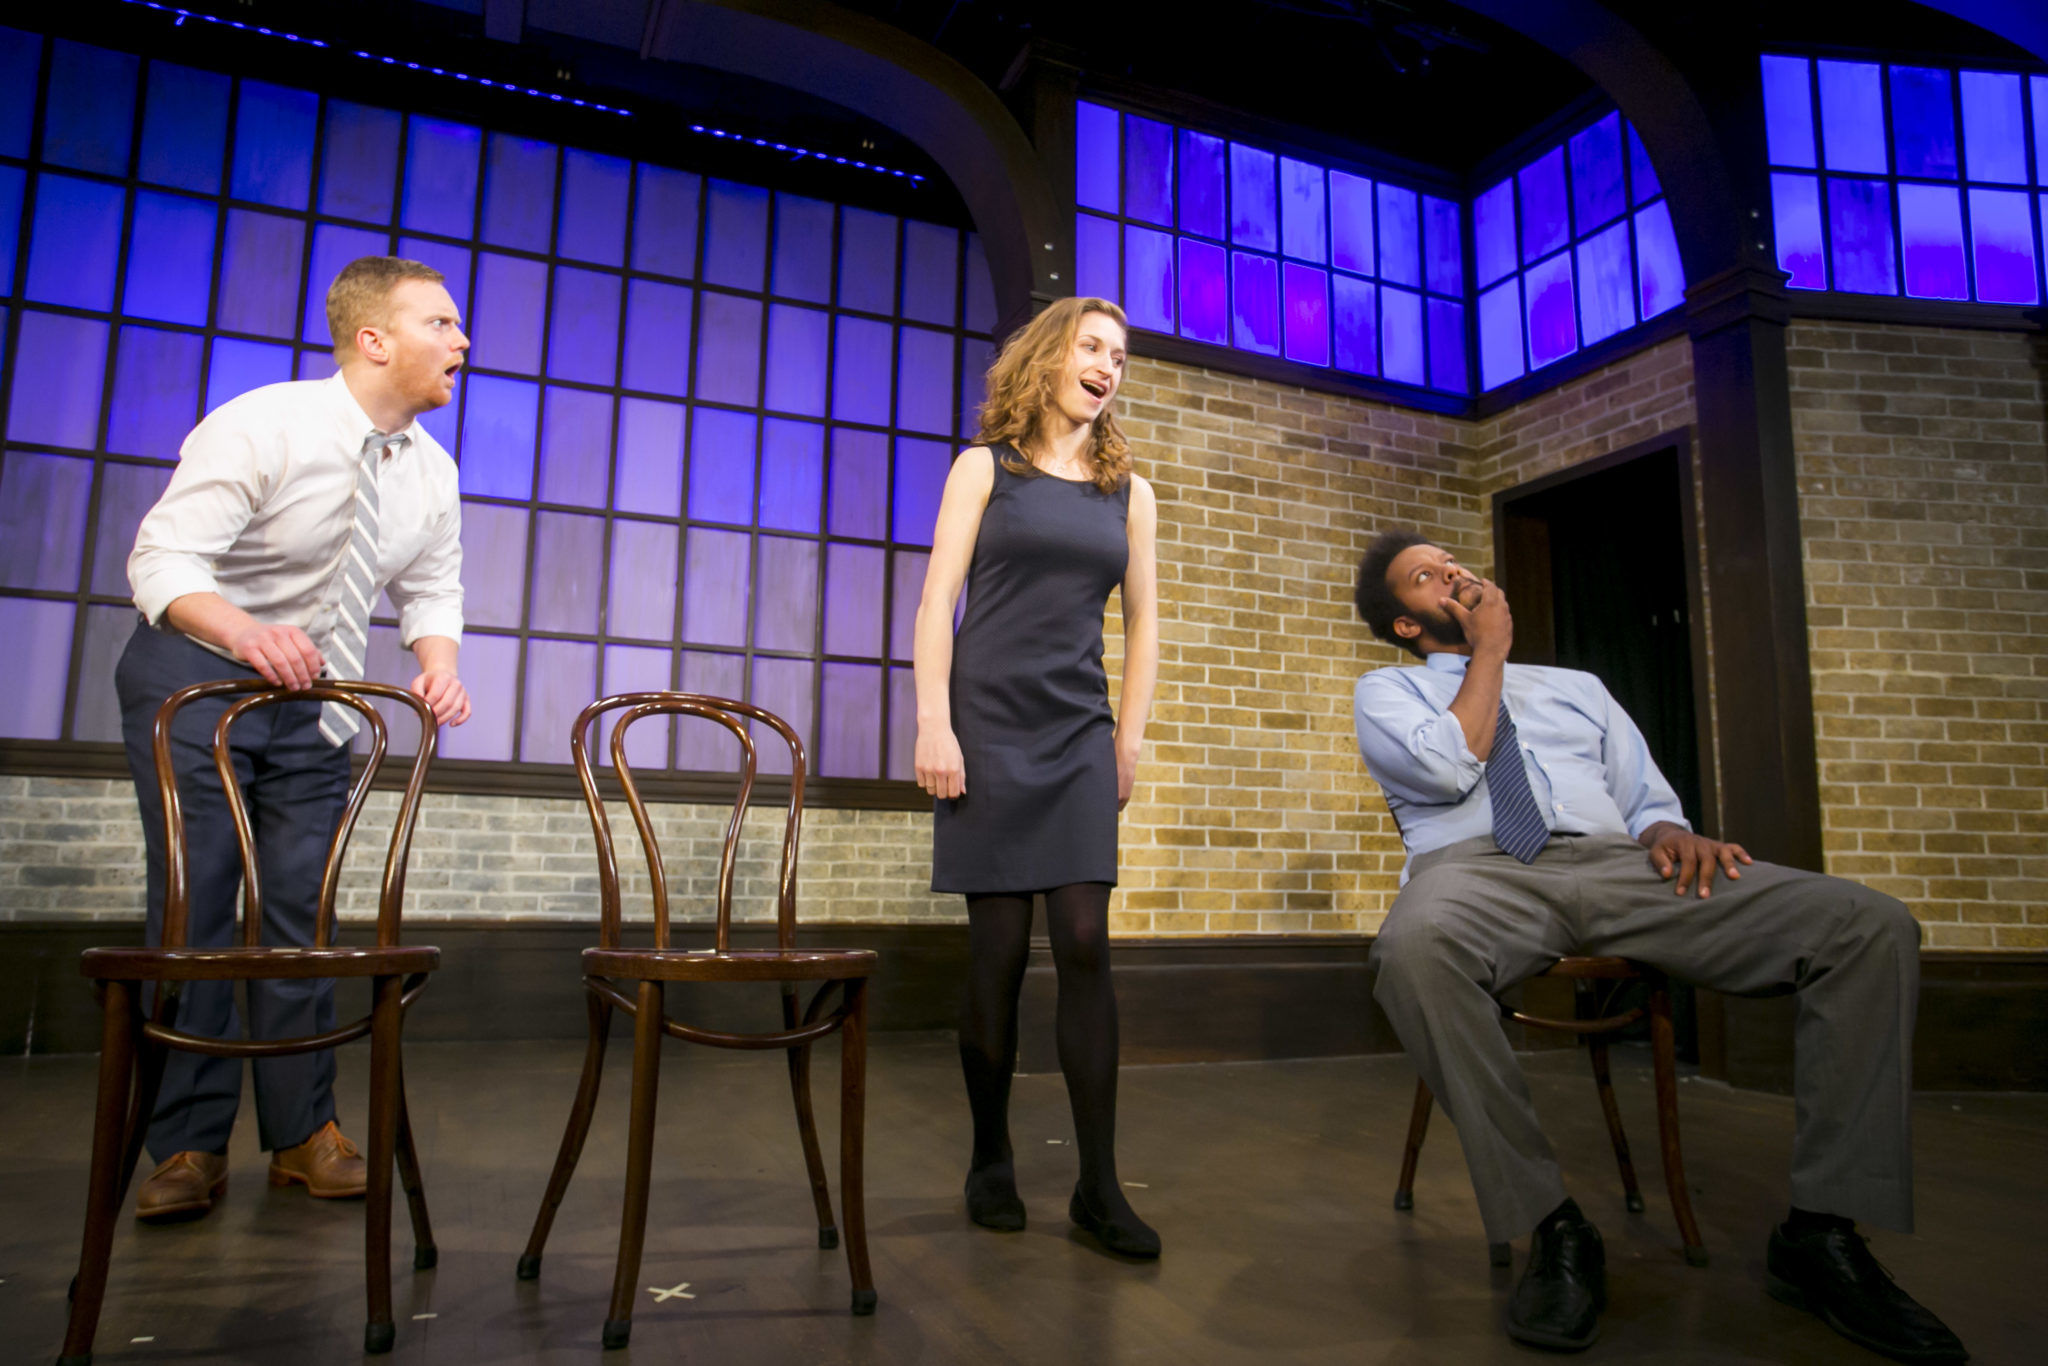 The Second City Promo Codes December Top online The Second City promo codes in December , updated daily. You can find some of the best The Second City promo codes for save money at online store The Second City.